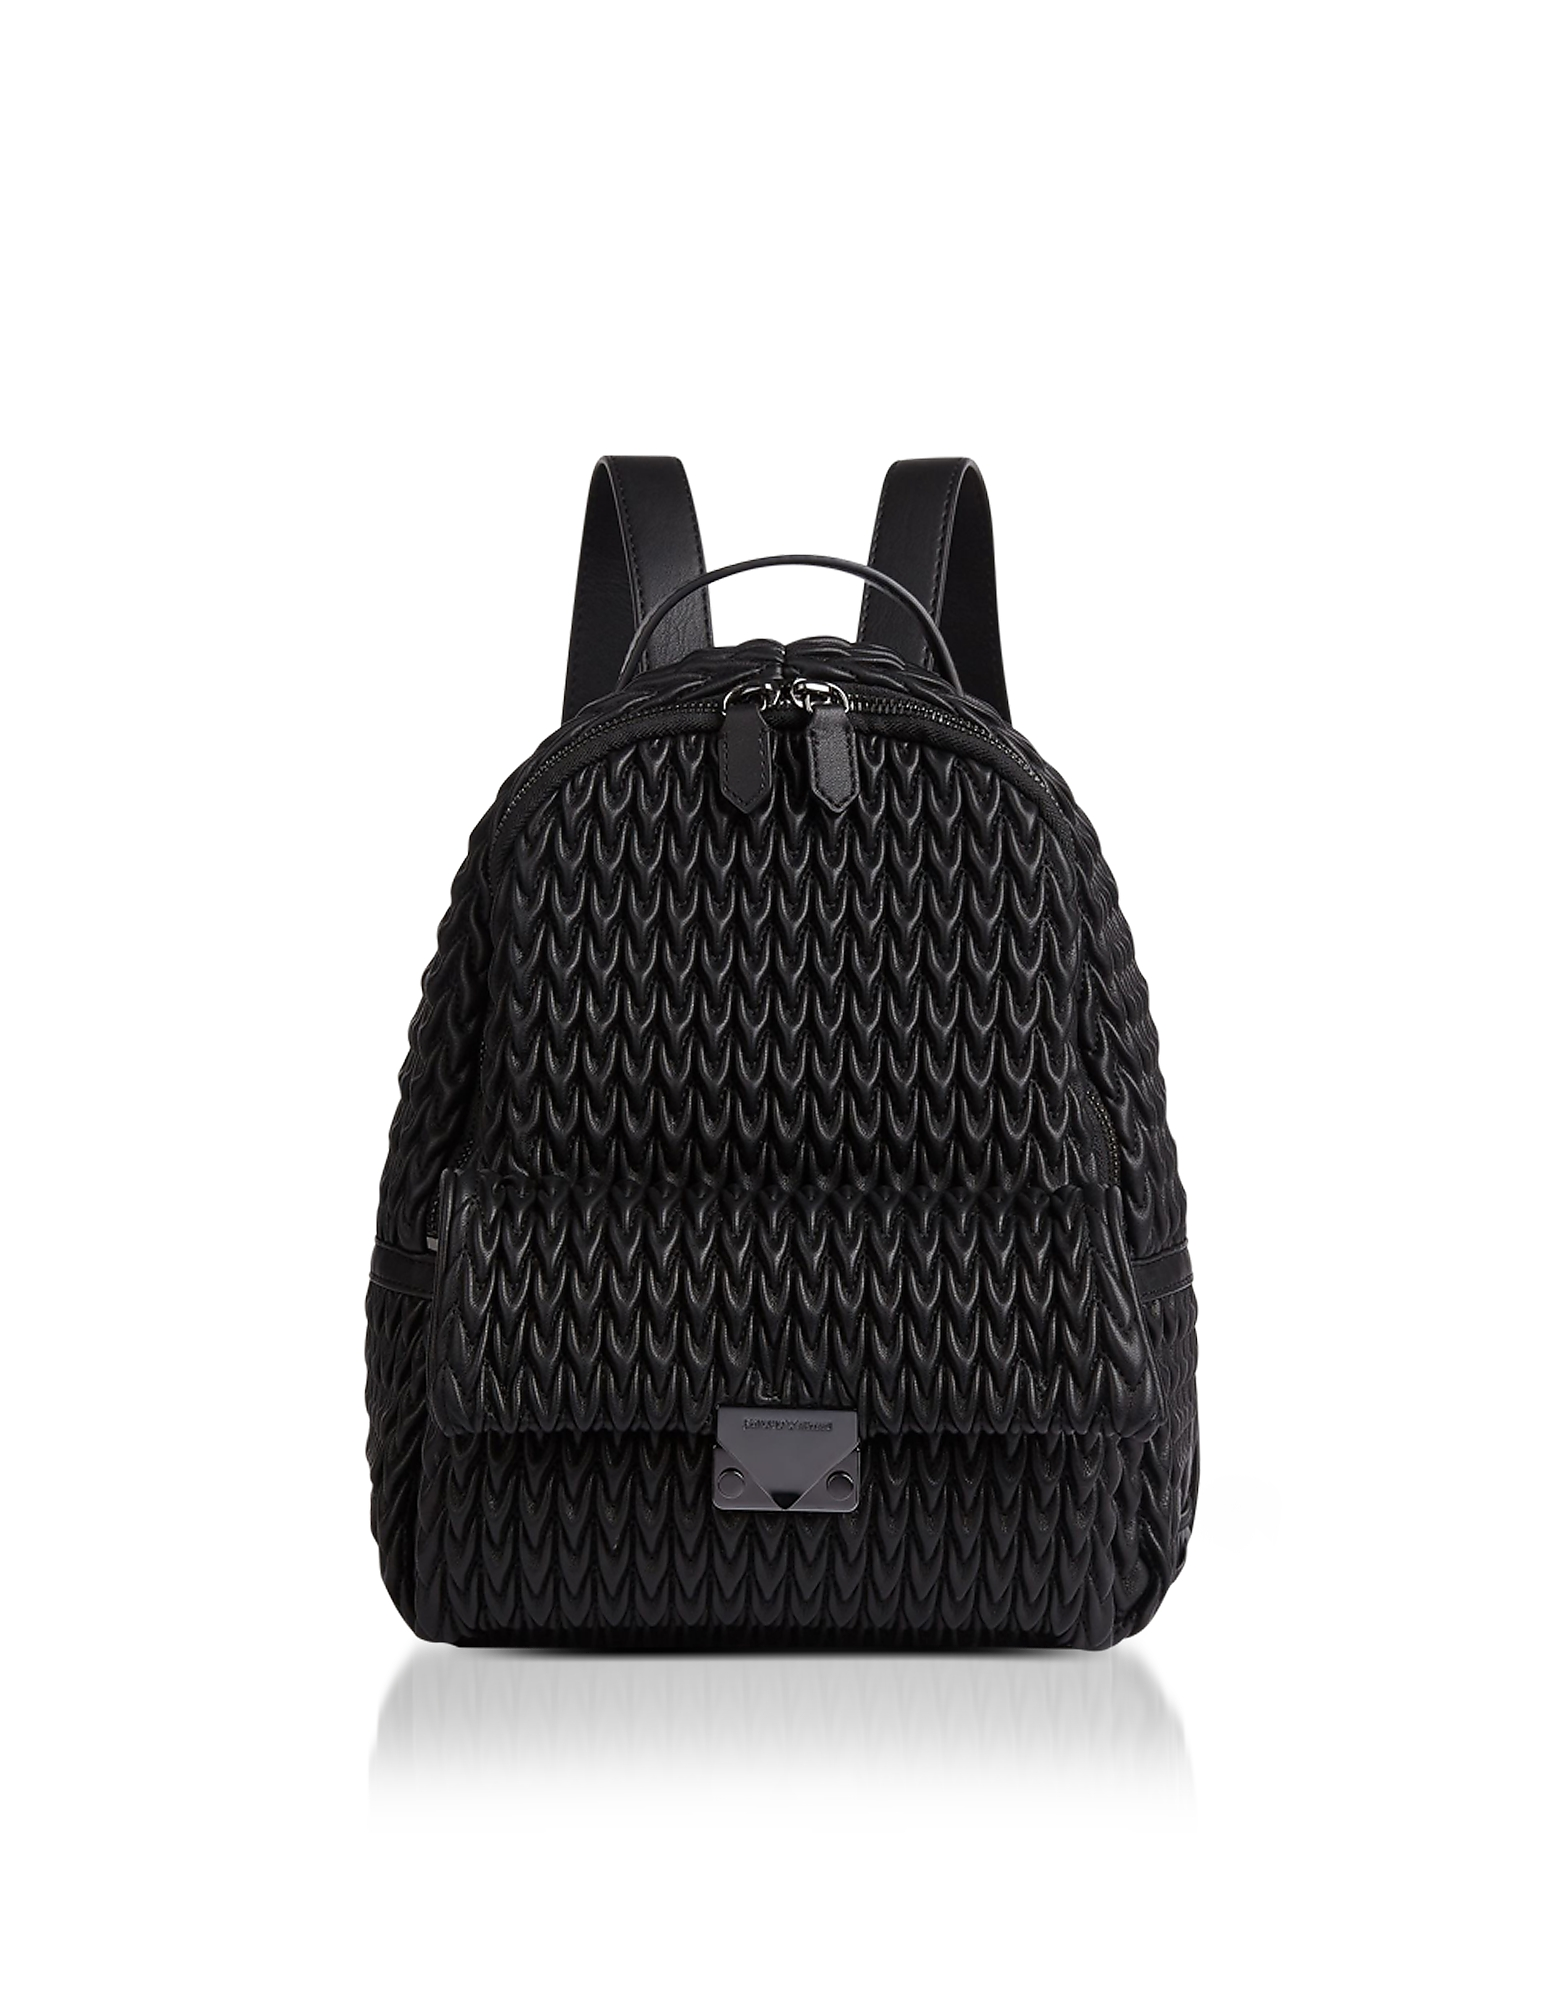 Emporio Armani Handbags, Quilted Eco-Leather Backpack